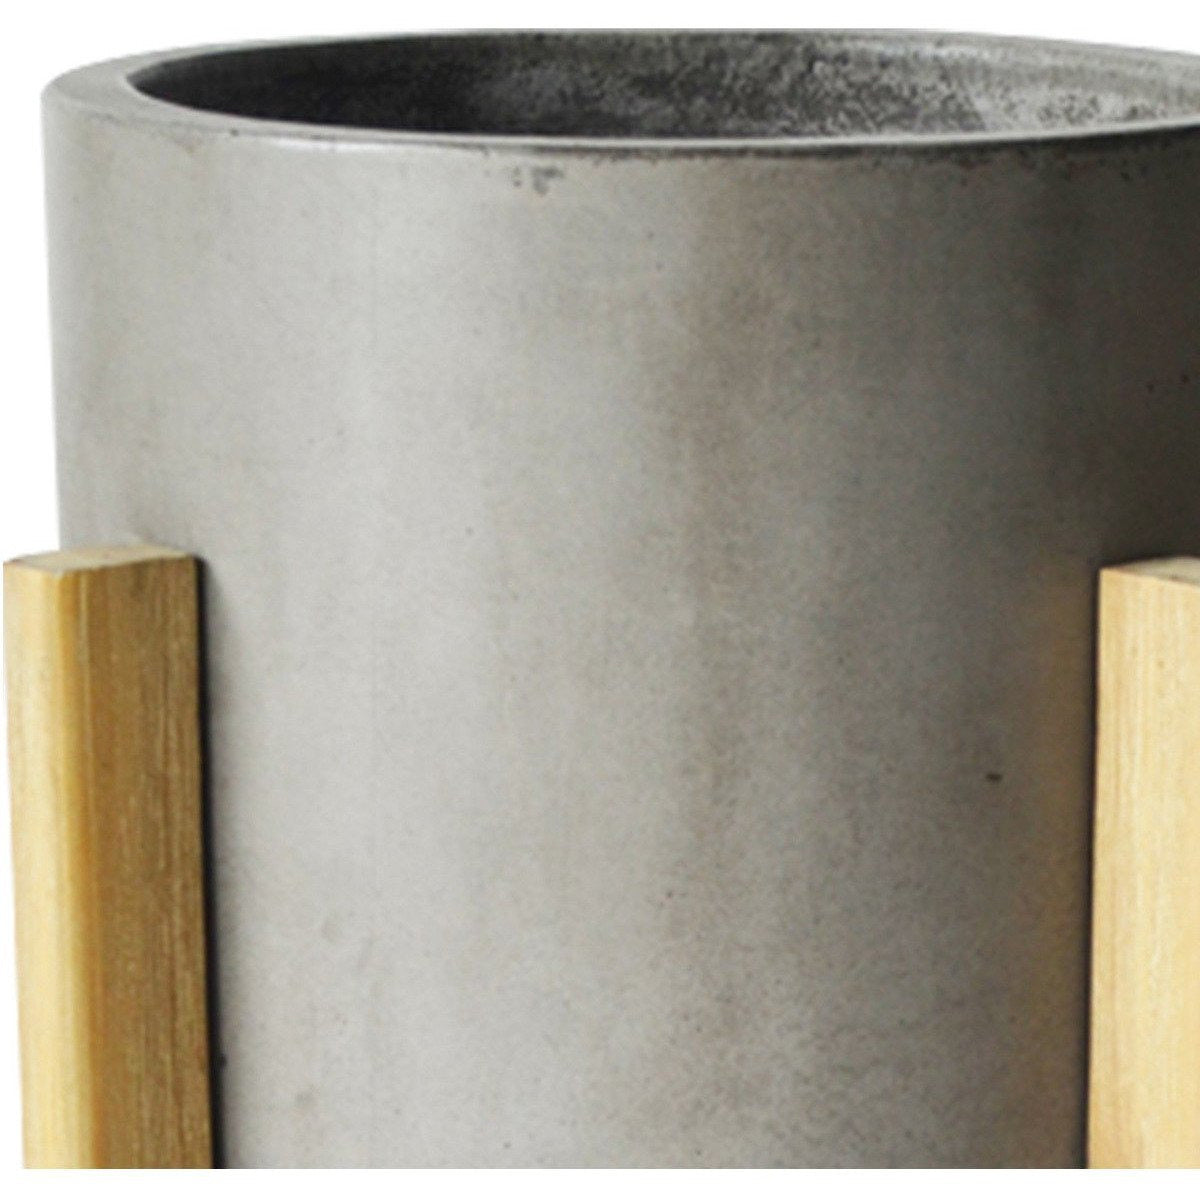 Planters - Modern Concrete Round Planter With Cross H Wood Base, Brown And Gray